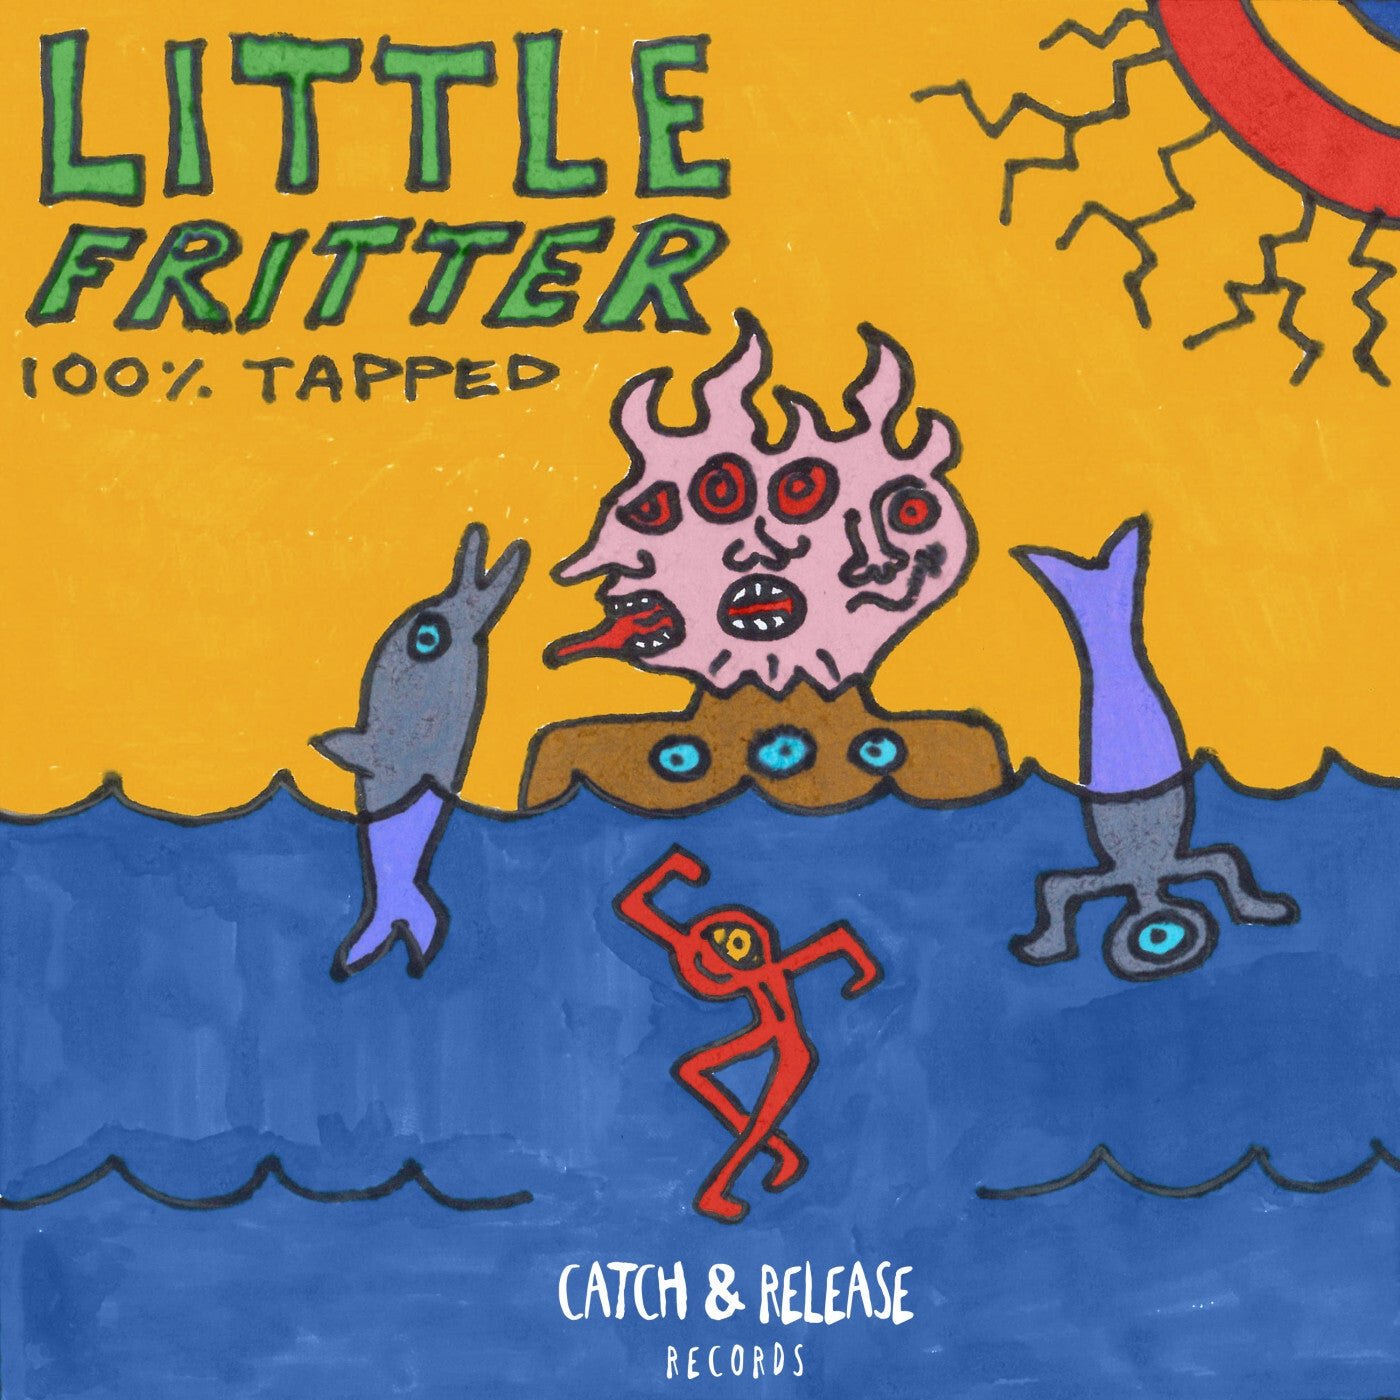 Little Fritter - 100% Tapped (2021)